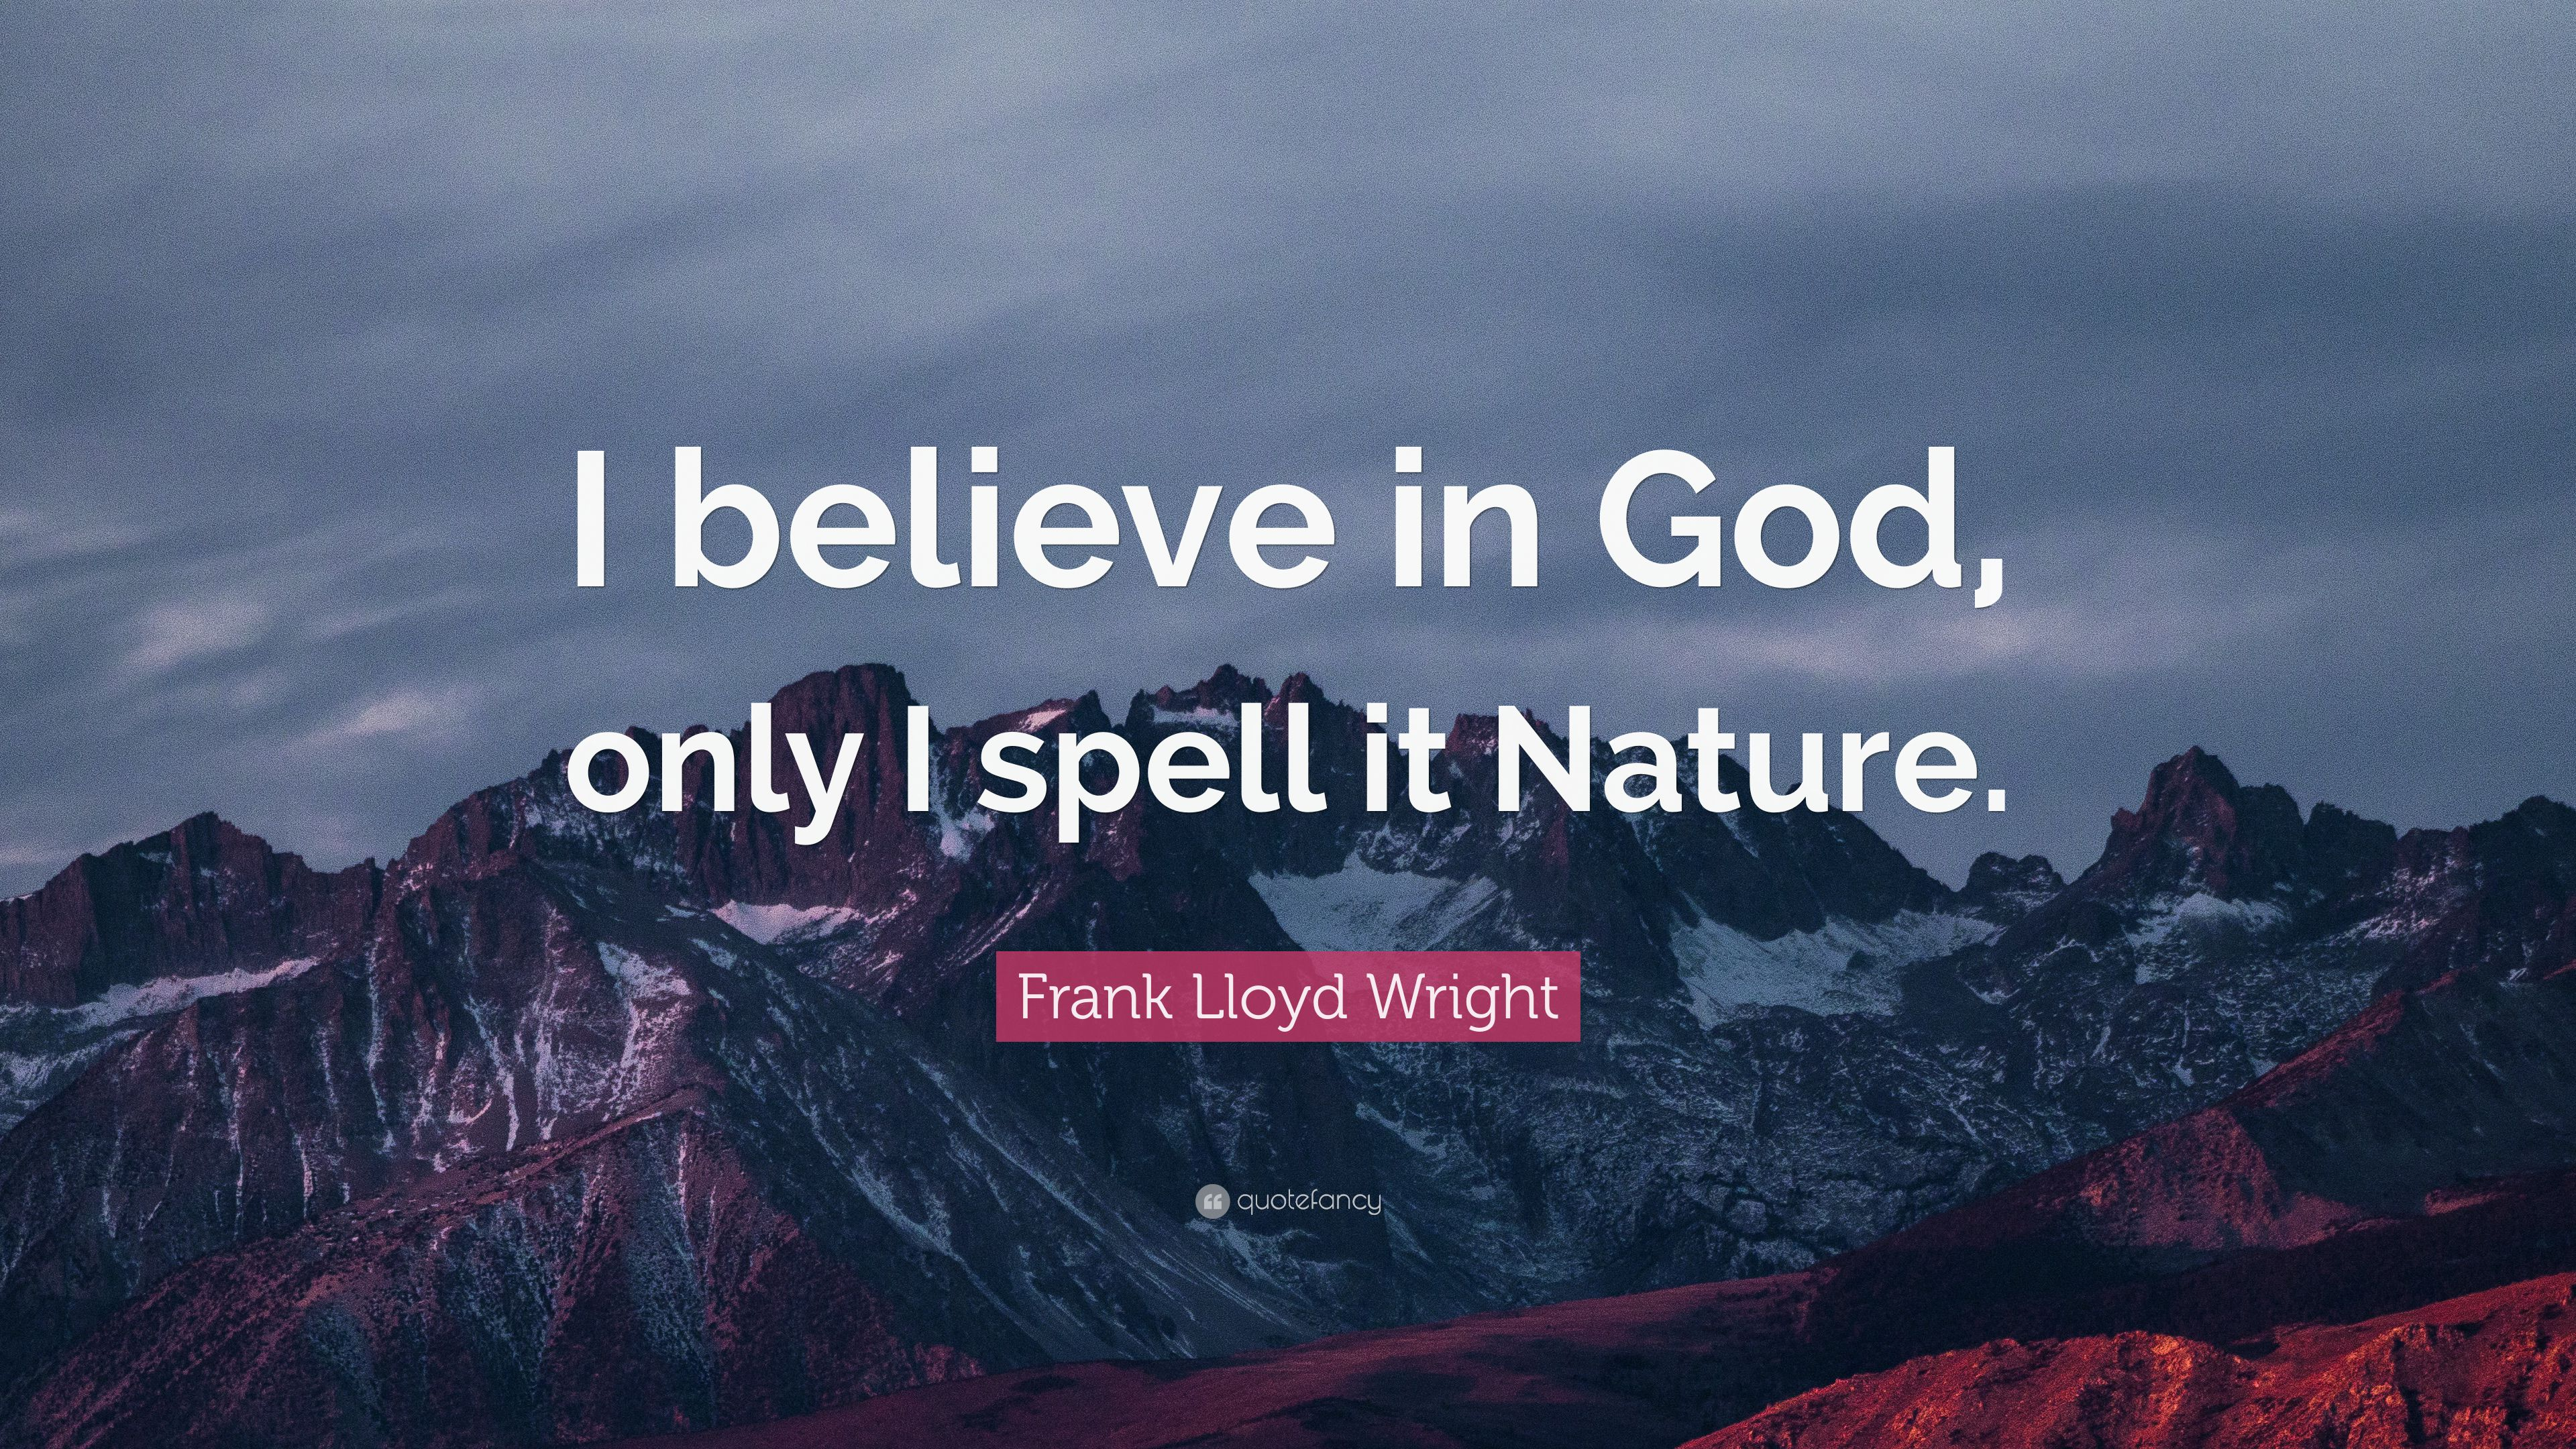 """Frank Lloyd Wright Quote: """"I believe in God, only I spell it Nature."""" (25 wallpapers) - Quotefancy"""